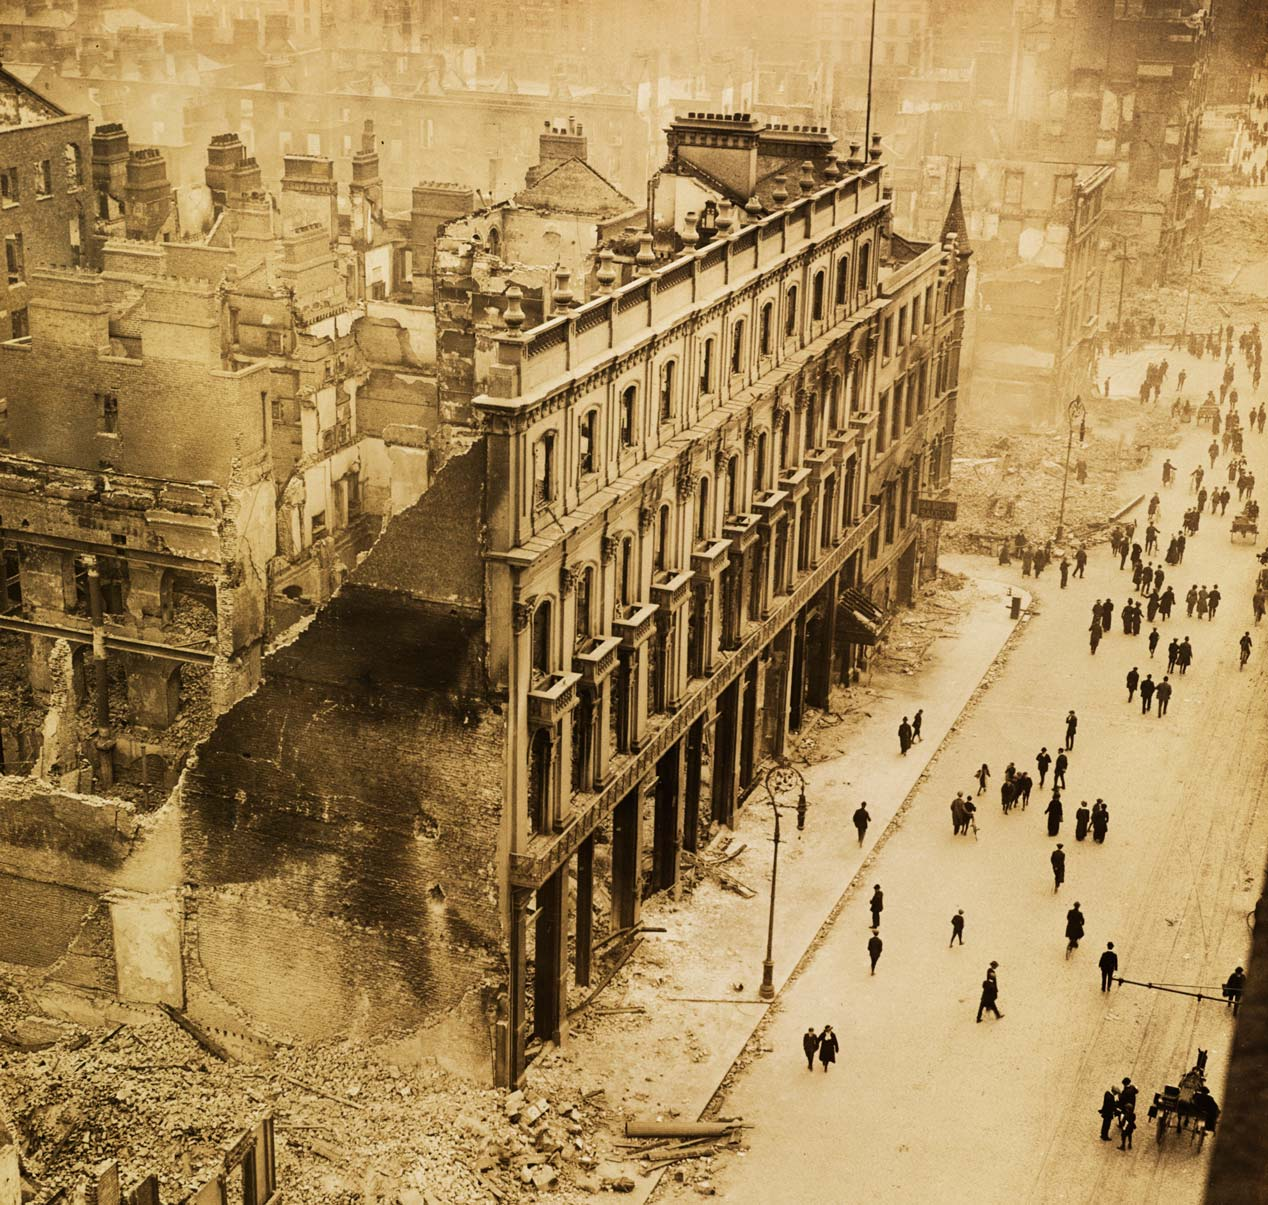 Dublin in ruins after the Easter Rising in 1916